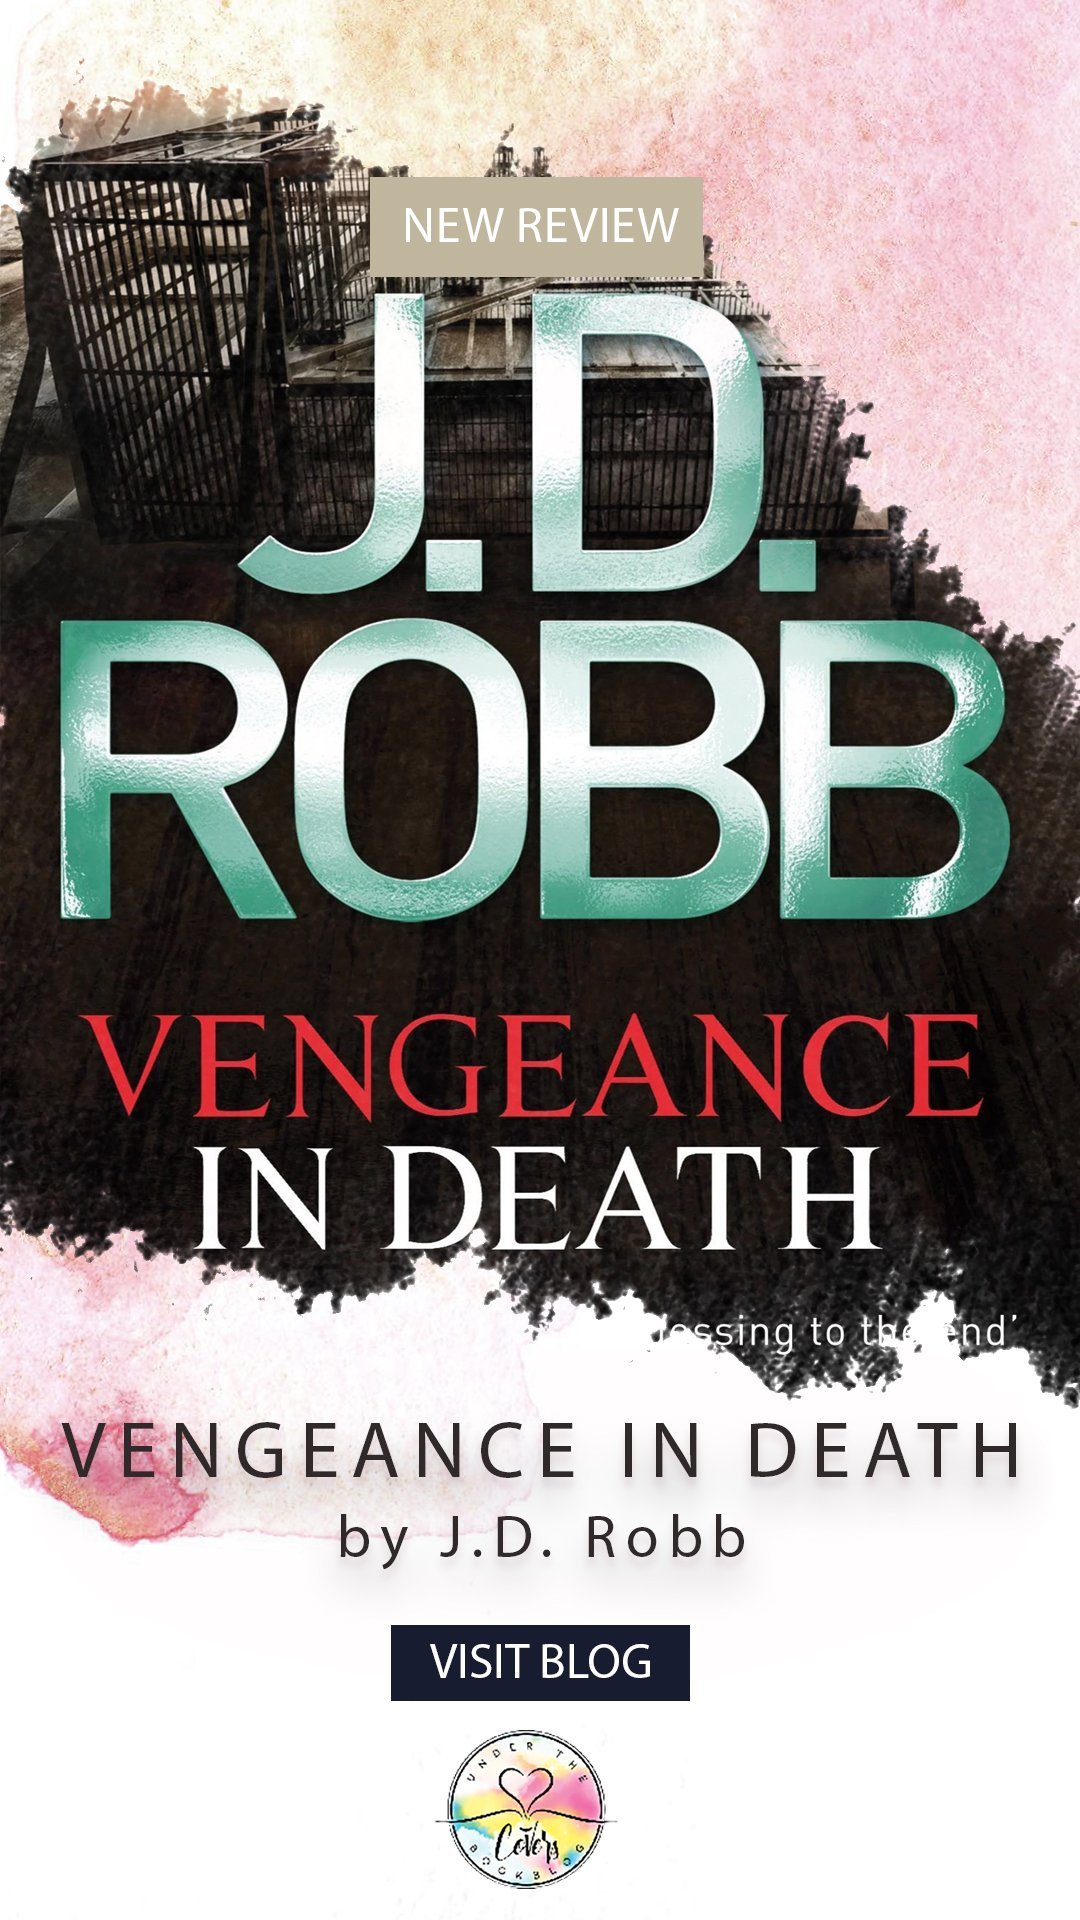 Buddy Read: Vengeance in Death by J.D. Robb